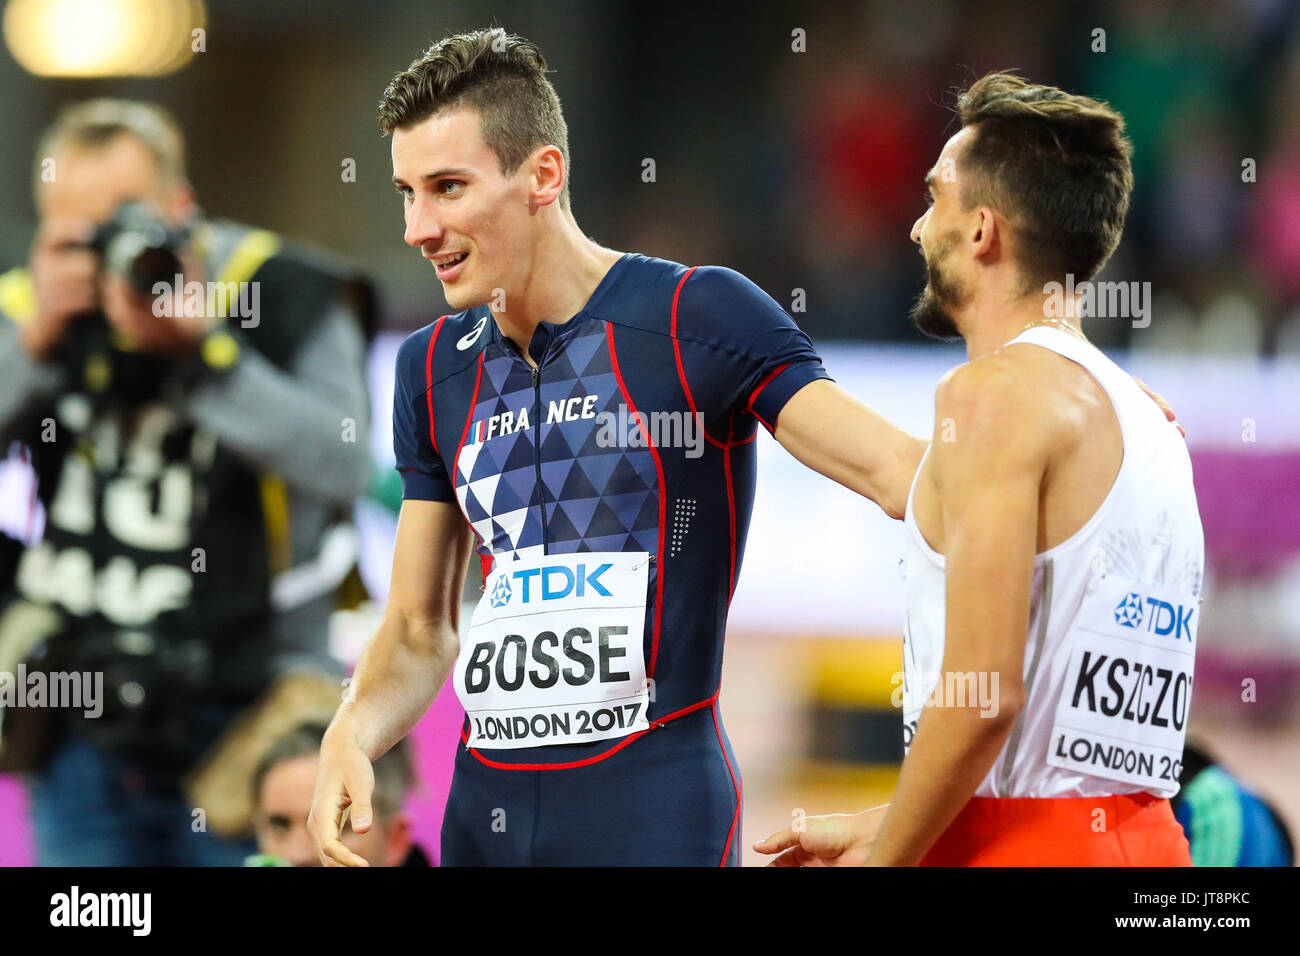 London, UK. 08th Aug, 2017. London, August 08 2017 . Pierre-Ambroise Bosse, France, congratulates runner up Adam Kszczot, Poland, after the men's 800m final on day five of the IAAF London 2017 world Championships at the London Stadium. Credit: Paul Davey/Alamy Live News - Stock Image